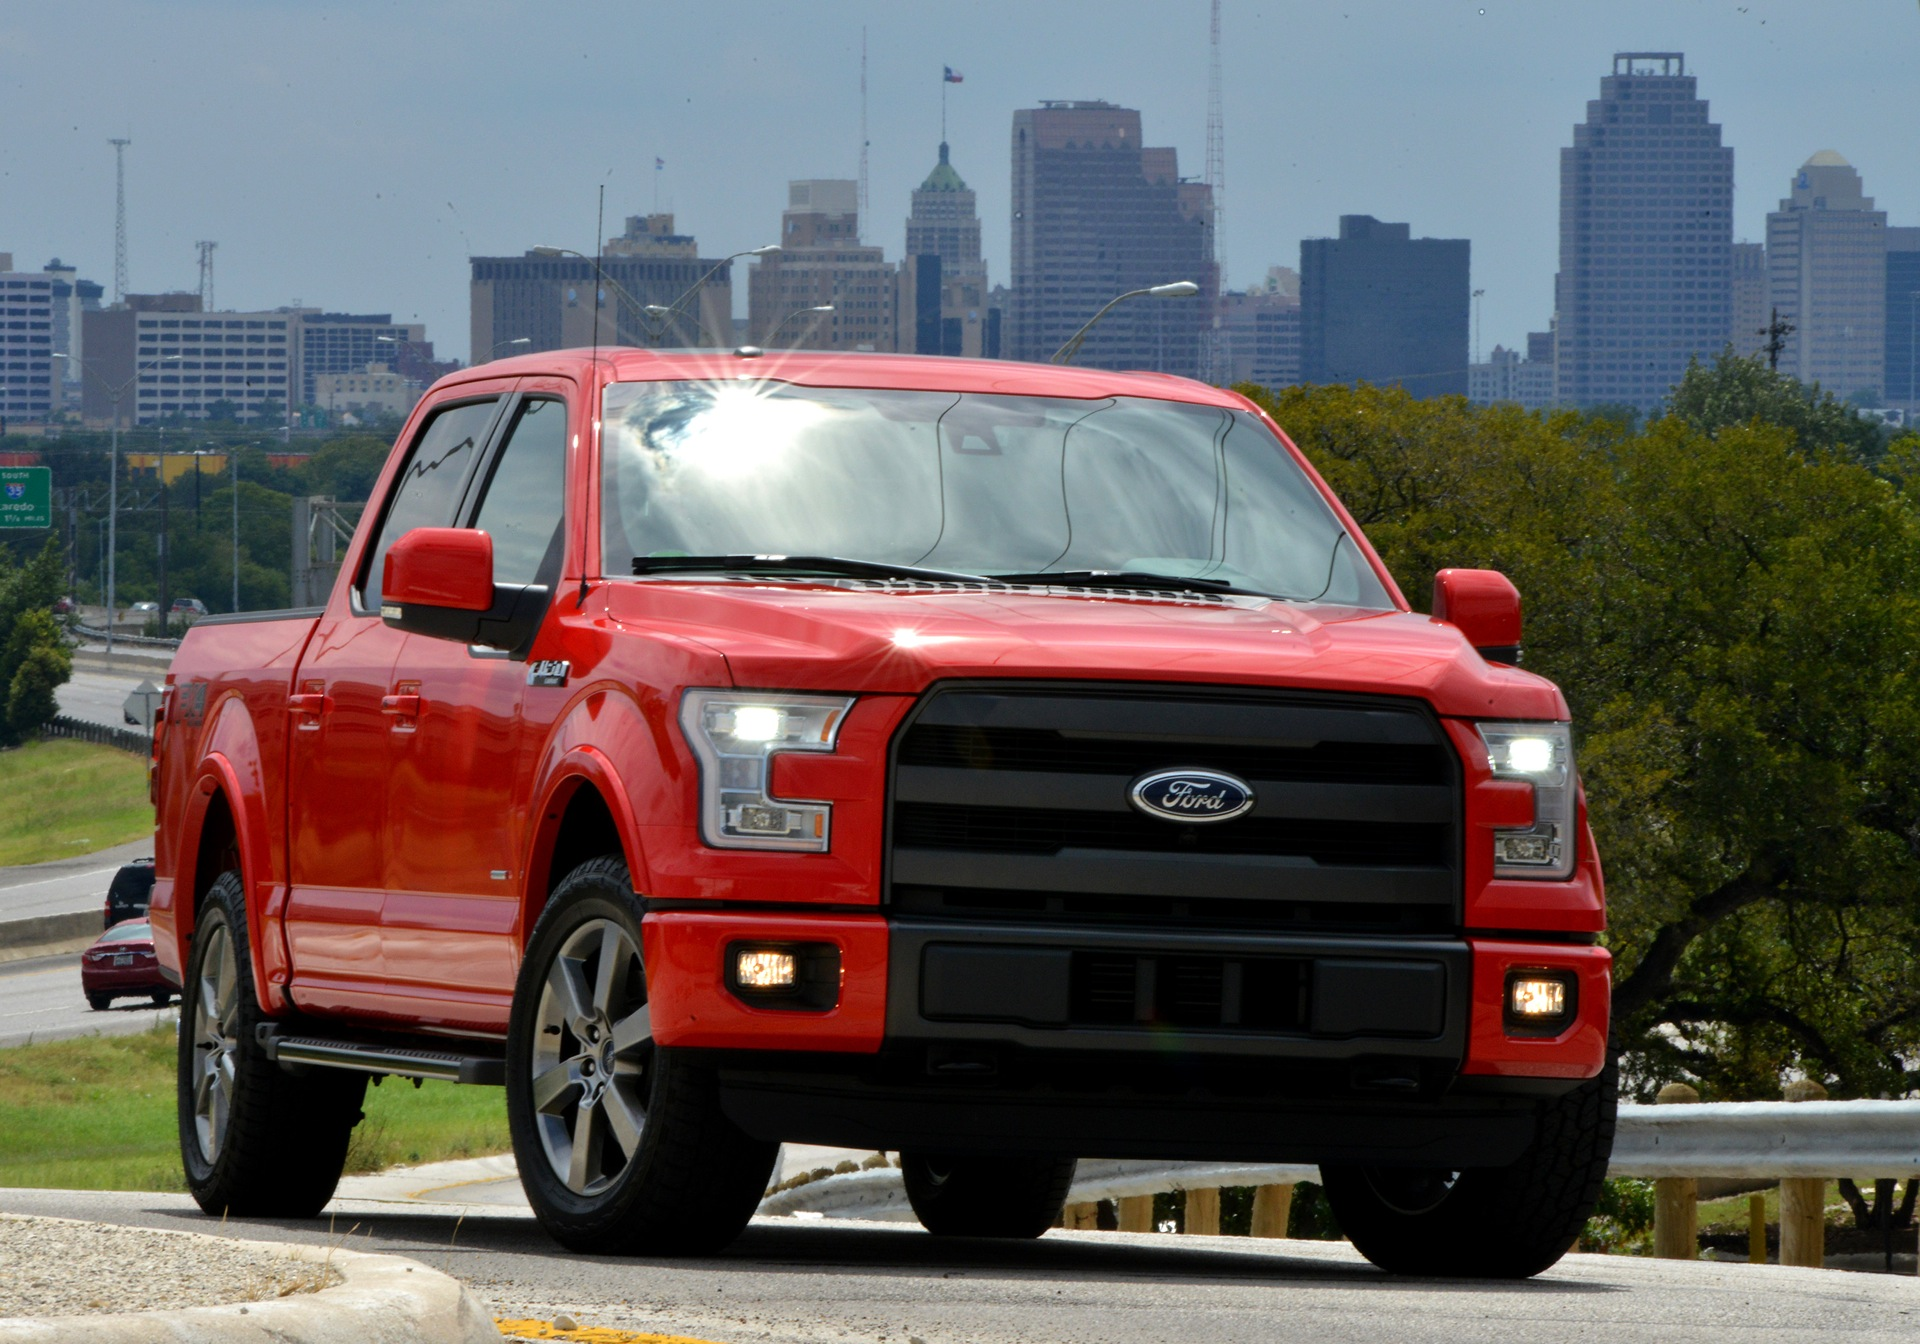 Ford F150 Hybrid Pickup Truck By 2020 Reconfirmed But Diesel Too